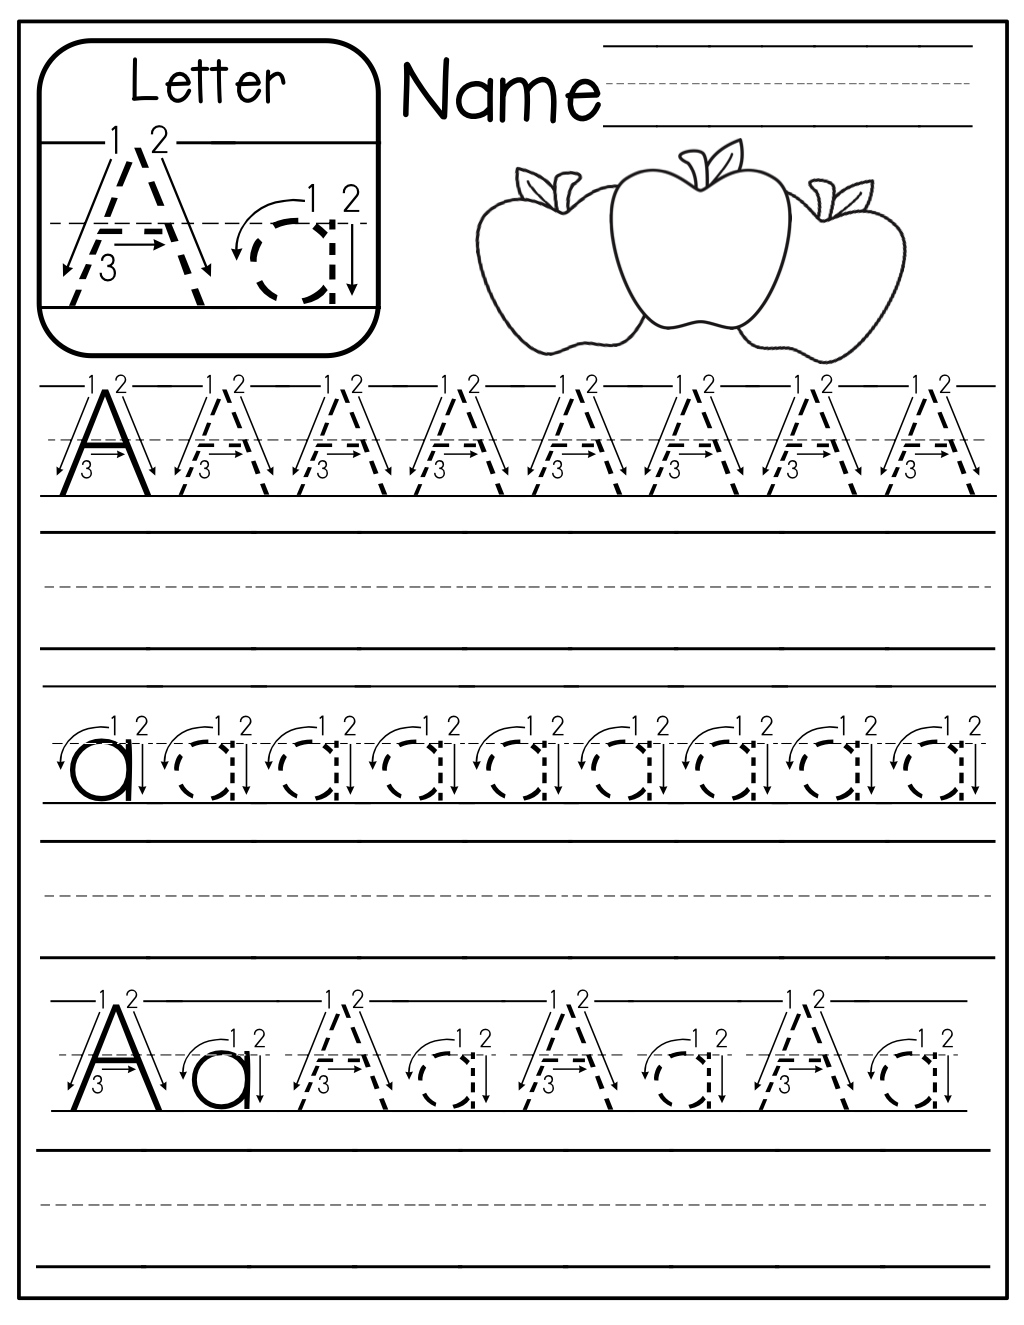 FREE…FREE!! A-Z Handwriting pages! Just print them out, place them ...